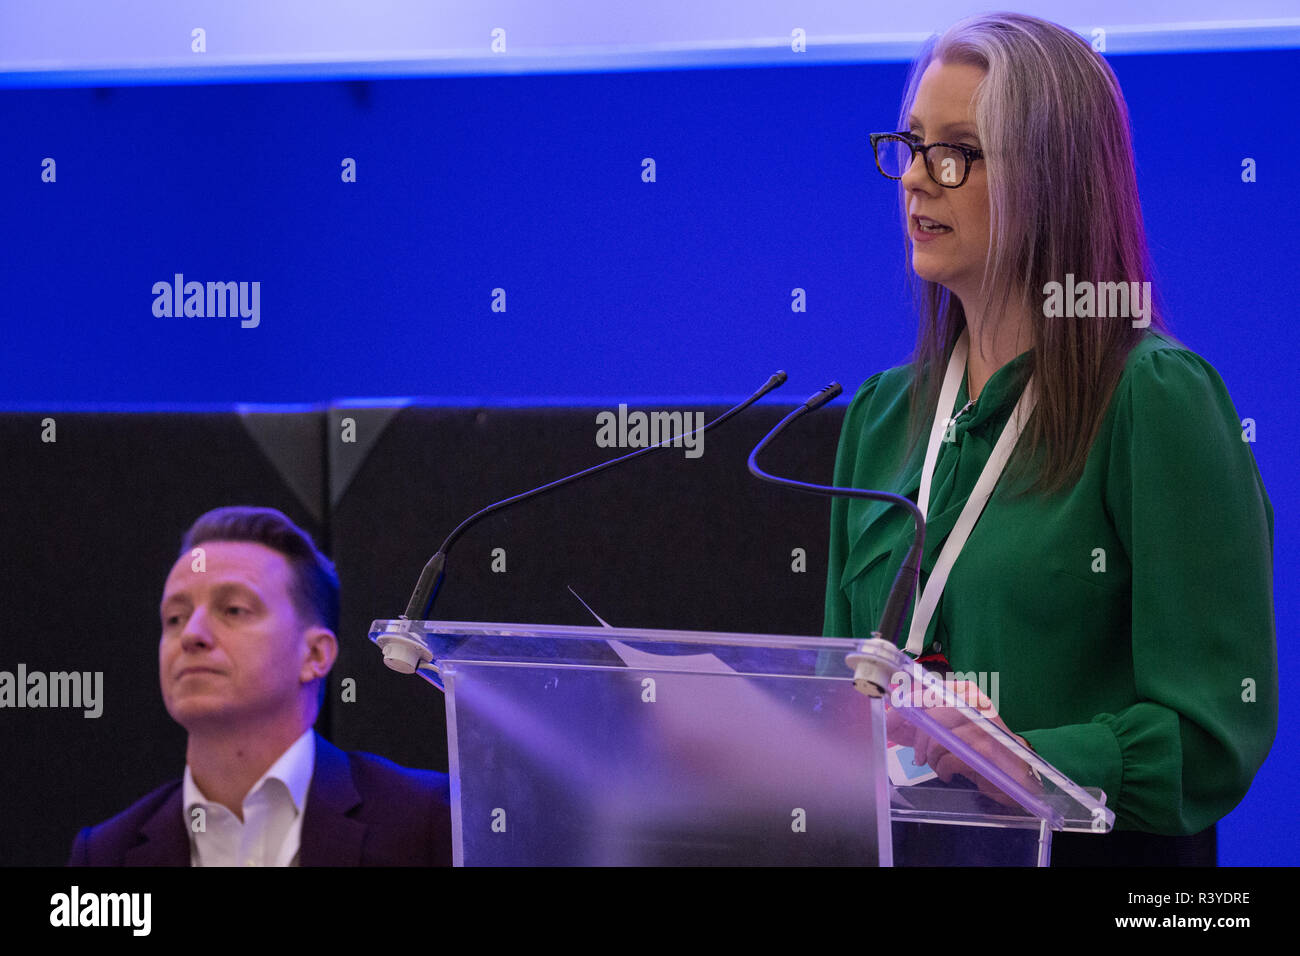 London, UK. 24th November, 2018. Carla Burns, candidate for Renew UK, a new centrist political party launched in February 2018, addresses its inaugural National Assembly at Westminster Central Hall. Renew UK, led by Leaders Annabel Mullin and James Torrance and Deputy Leader James Clarke, has signed up 100 candidates ready to stand in future UK elections based on a wide-ranging programme of reform. Credit: Mark Kerrison/Alamy Live News - Stock Image